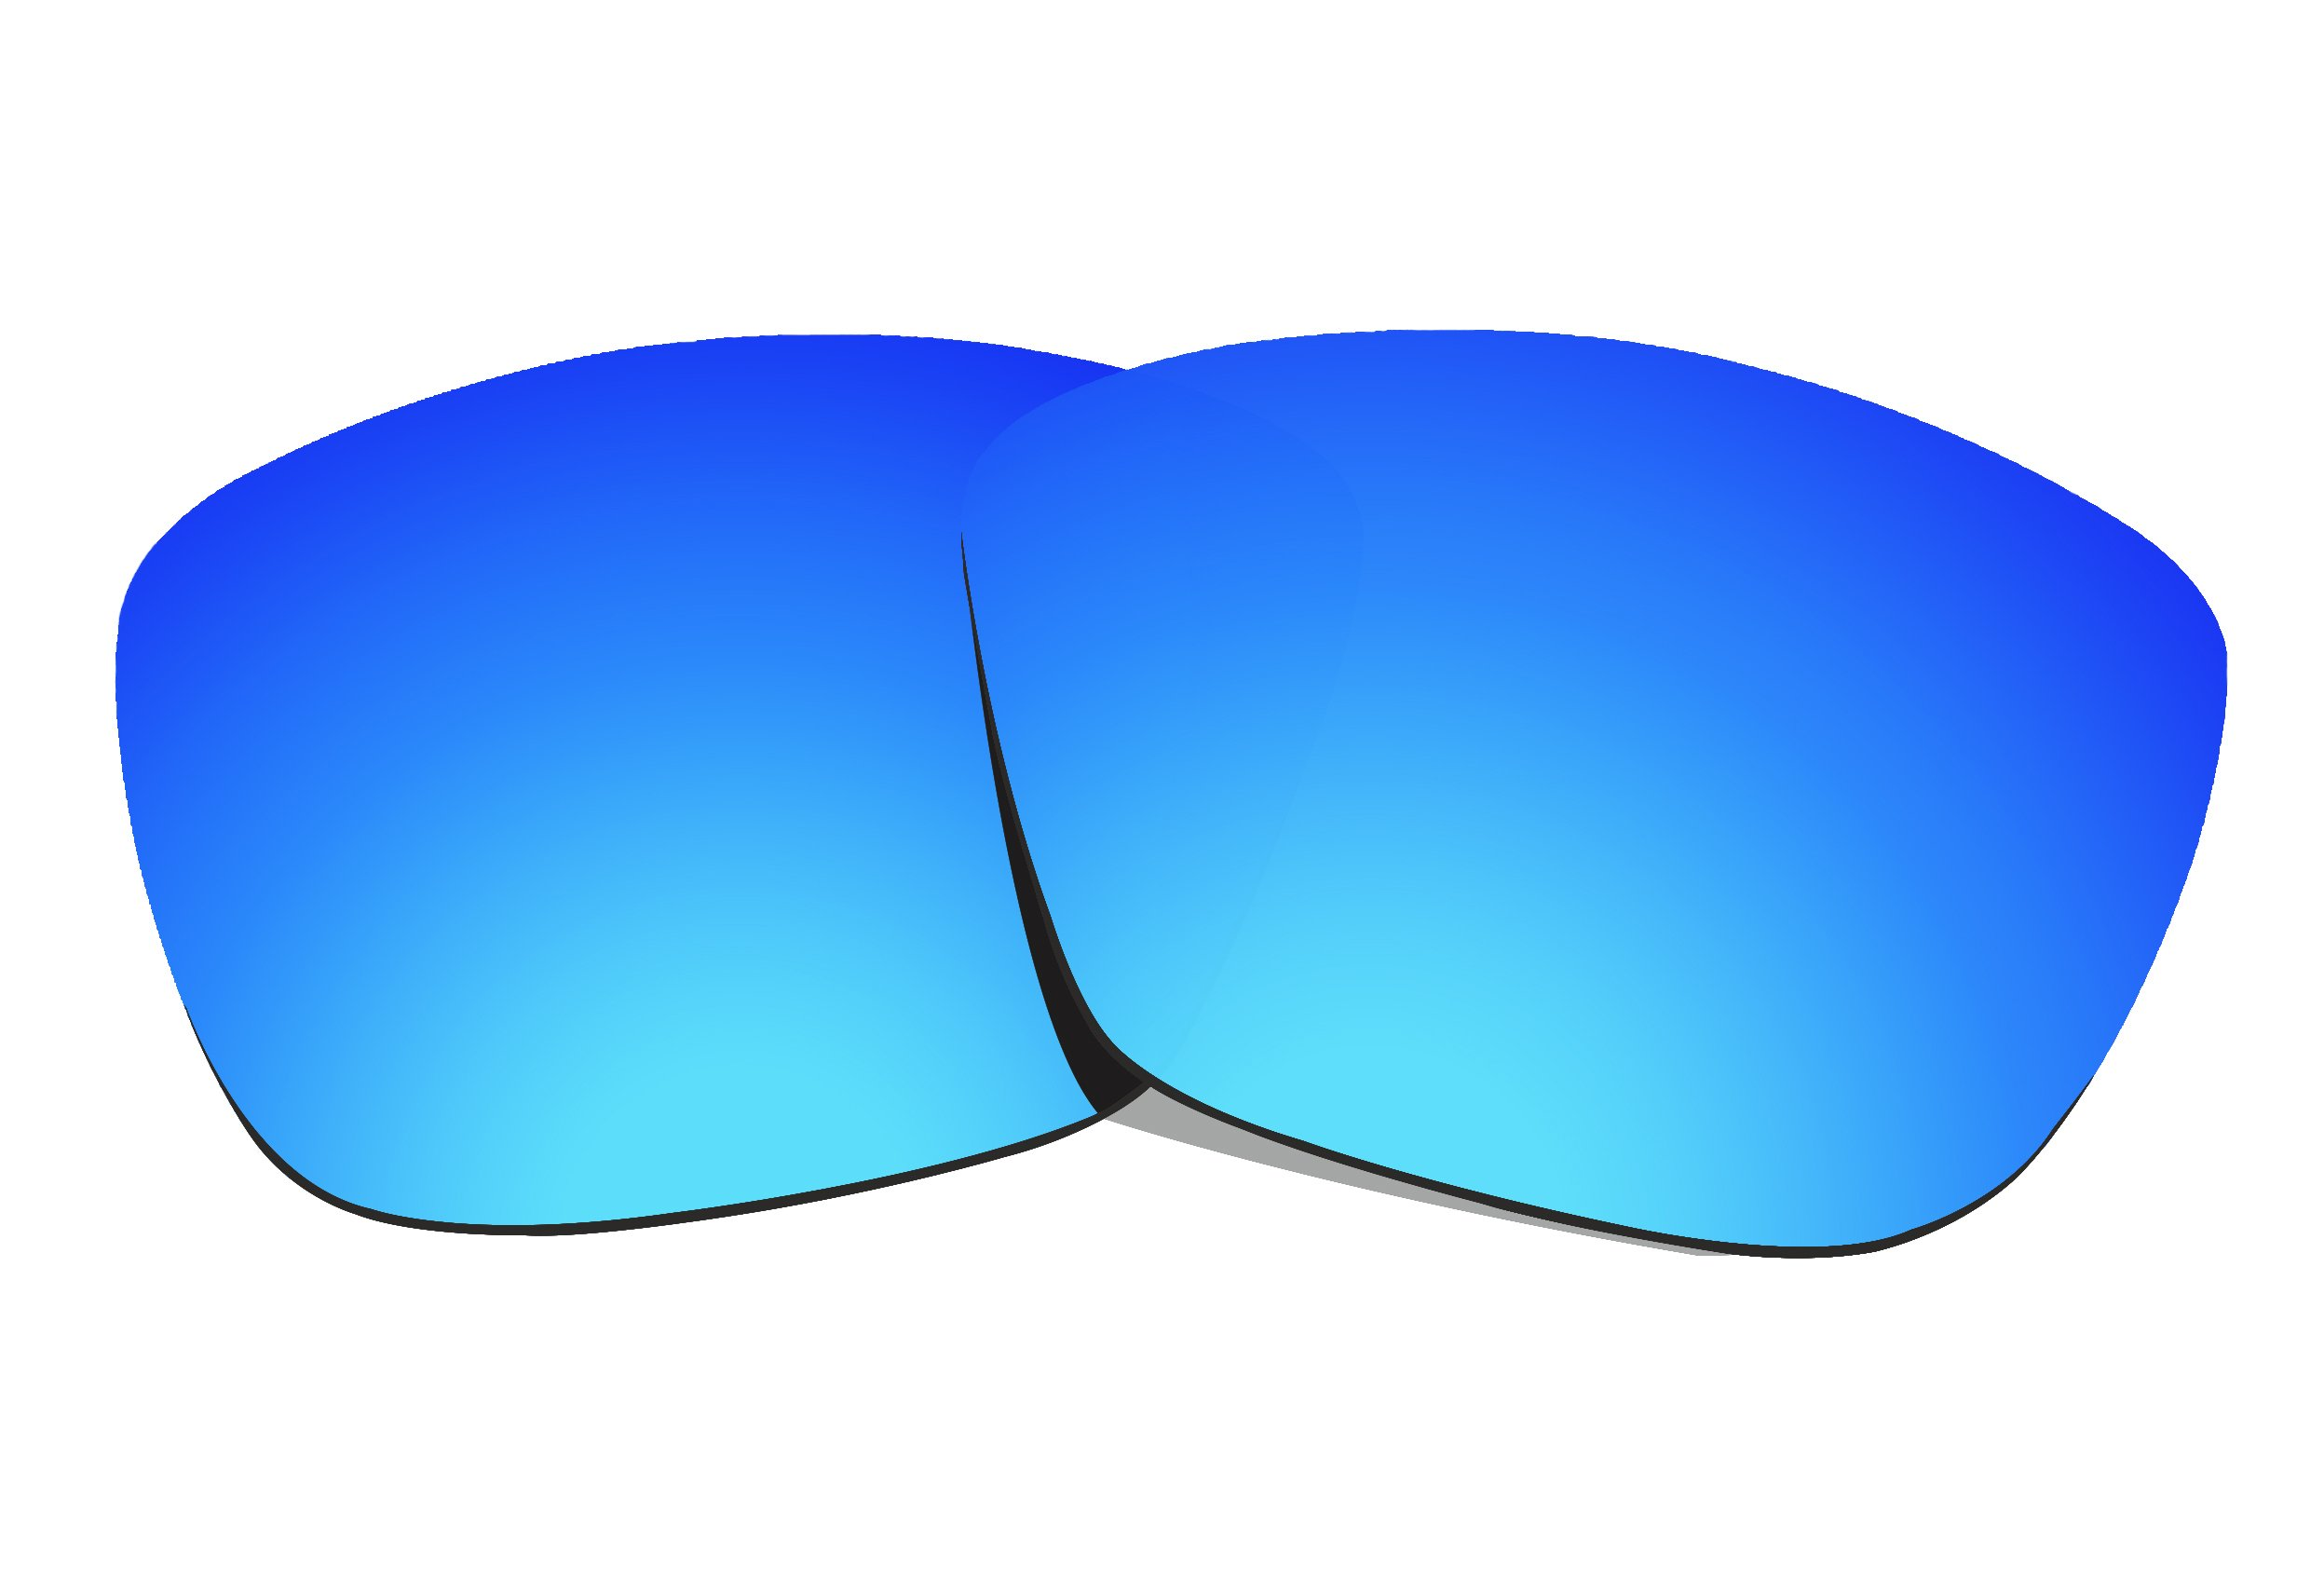 COLOR STAY LENSES 2.0mm Thickness Polarized Replacement Lenses for Oakley Hold On OO9298 Blue Mirror Coatings by COLOR STAY LENSES